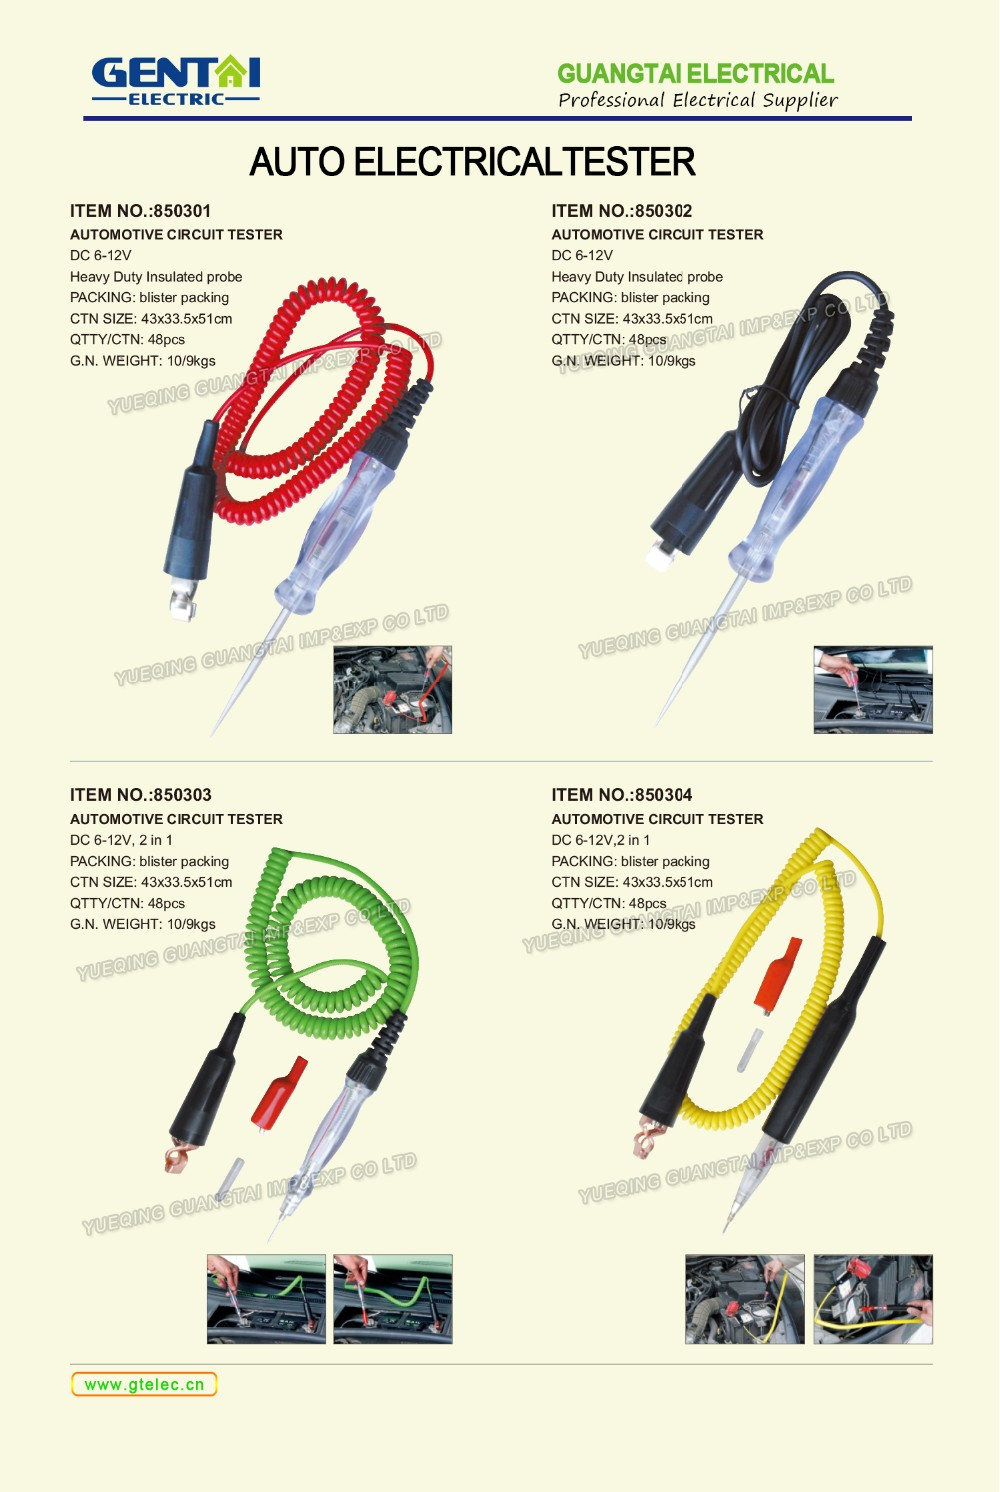 Power Probe Car Electric Circuit Tester Automotive Tools Auto 12 Vehicle Wiring Schematic Dc Voltage Vgate Electrical System